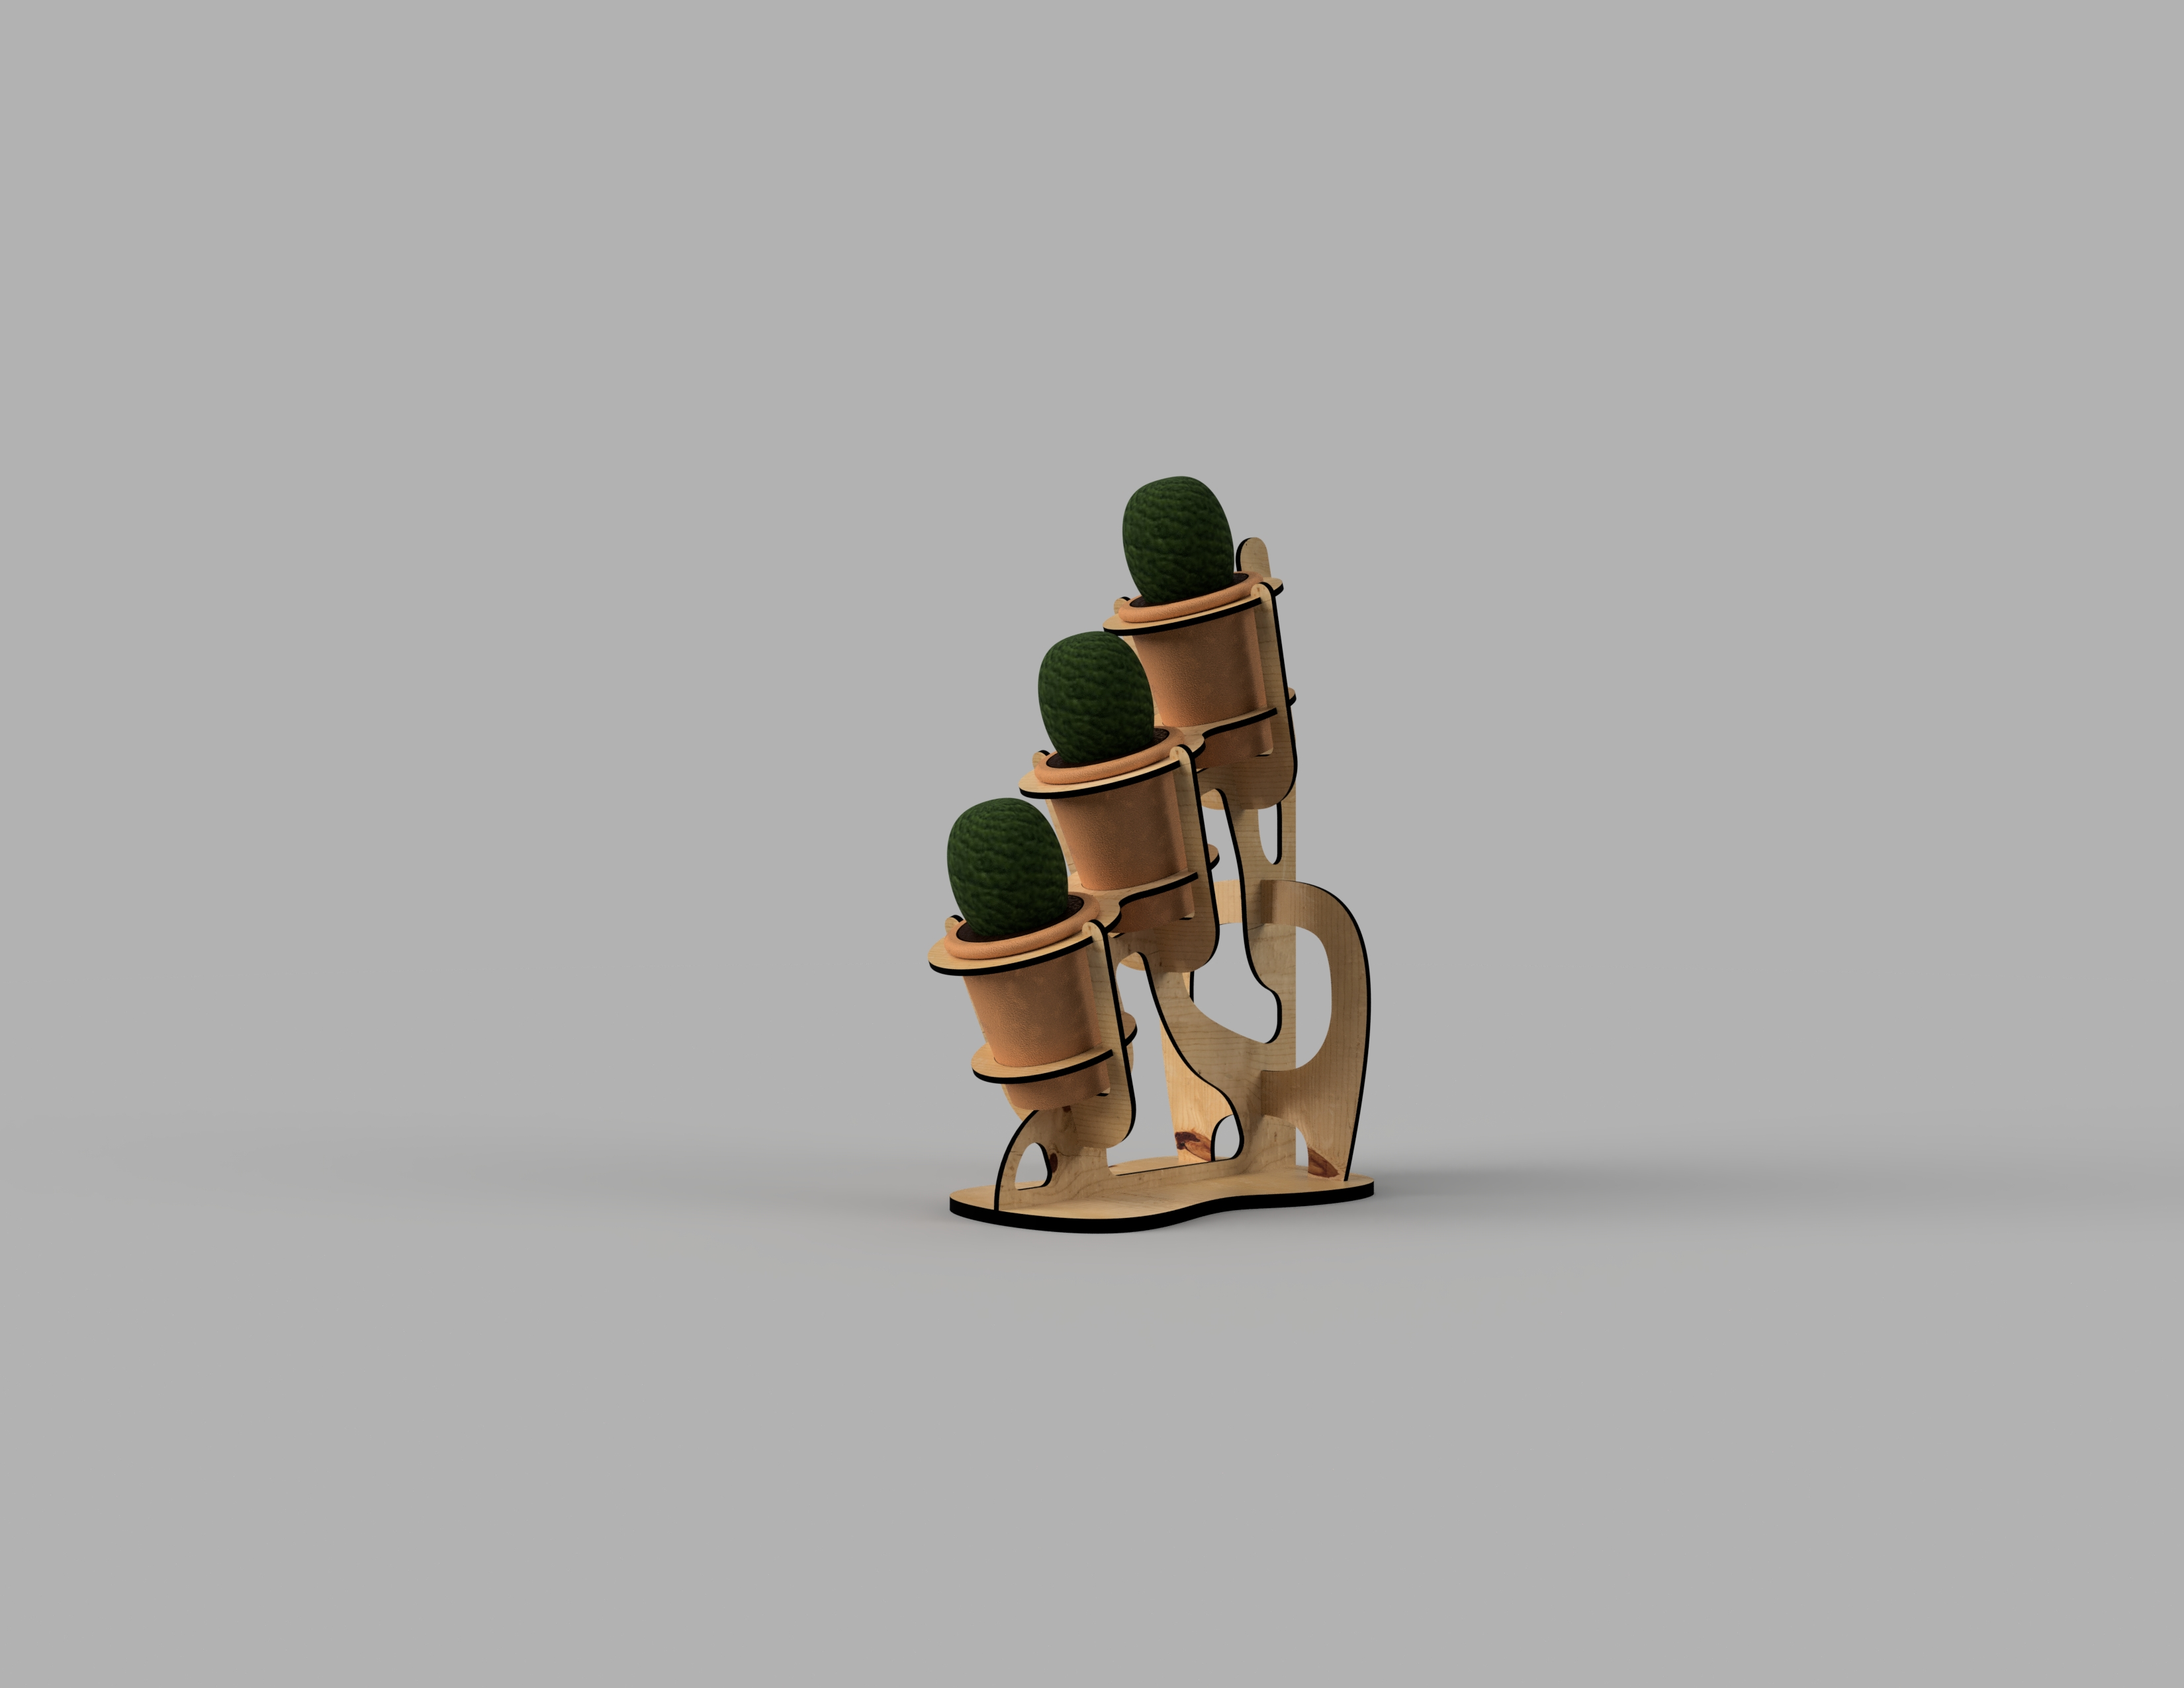 Picture of Designing the Pots and Planter in Fusion 360